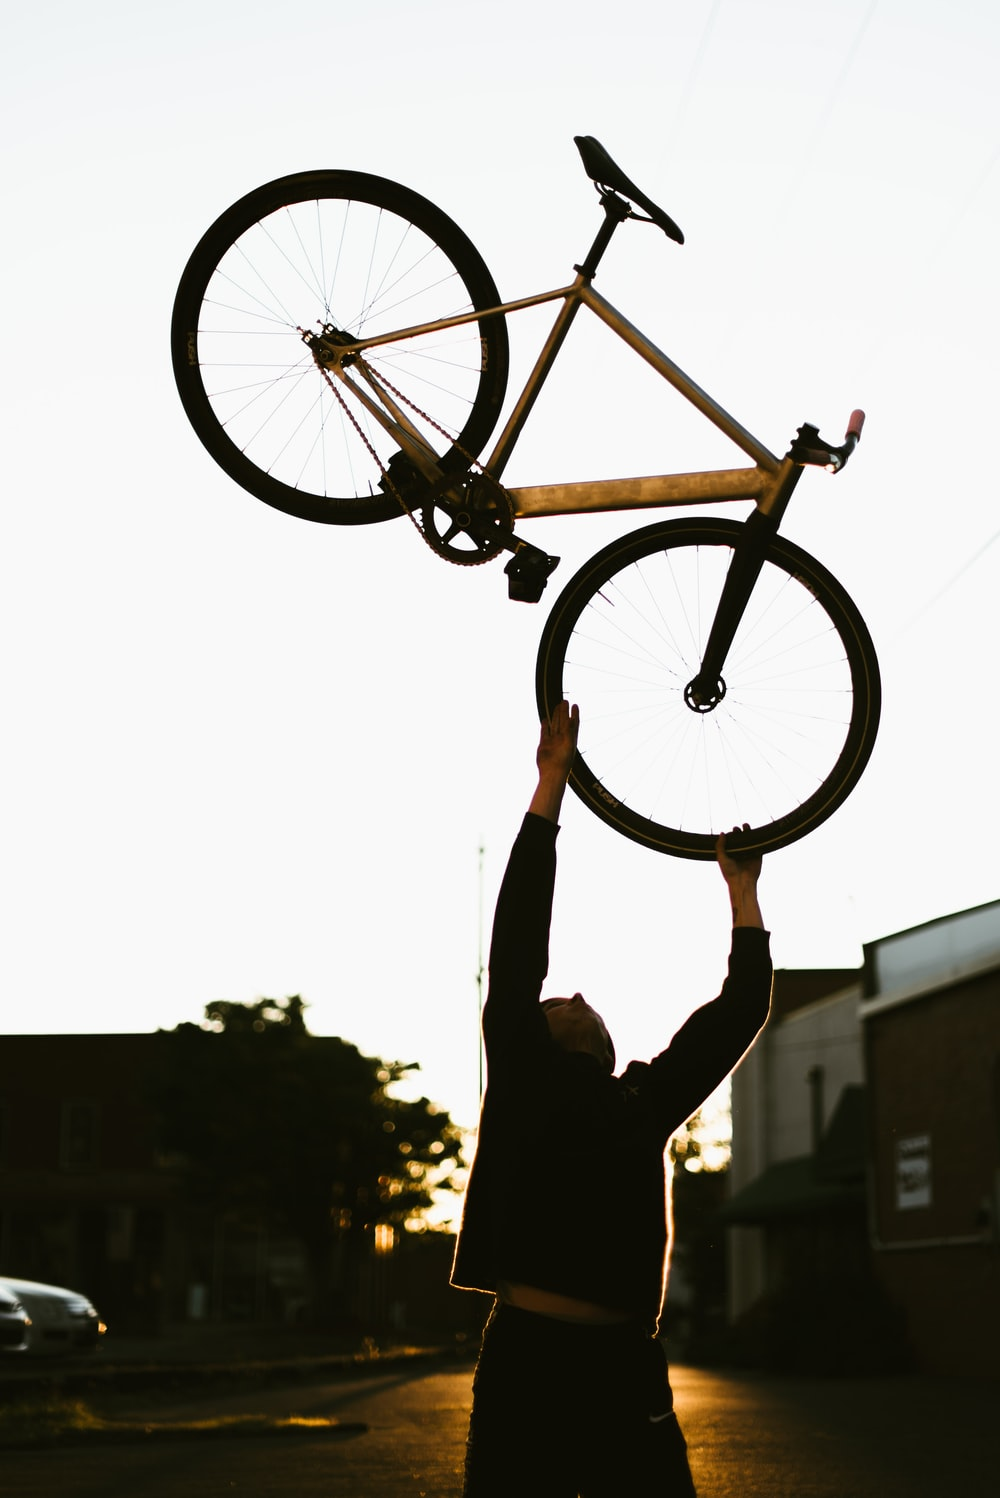 silhouette of person riding on bicycle